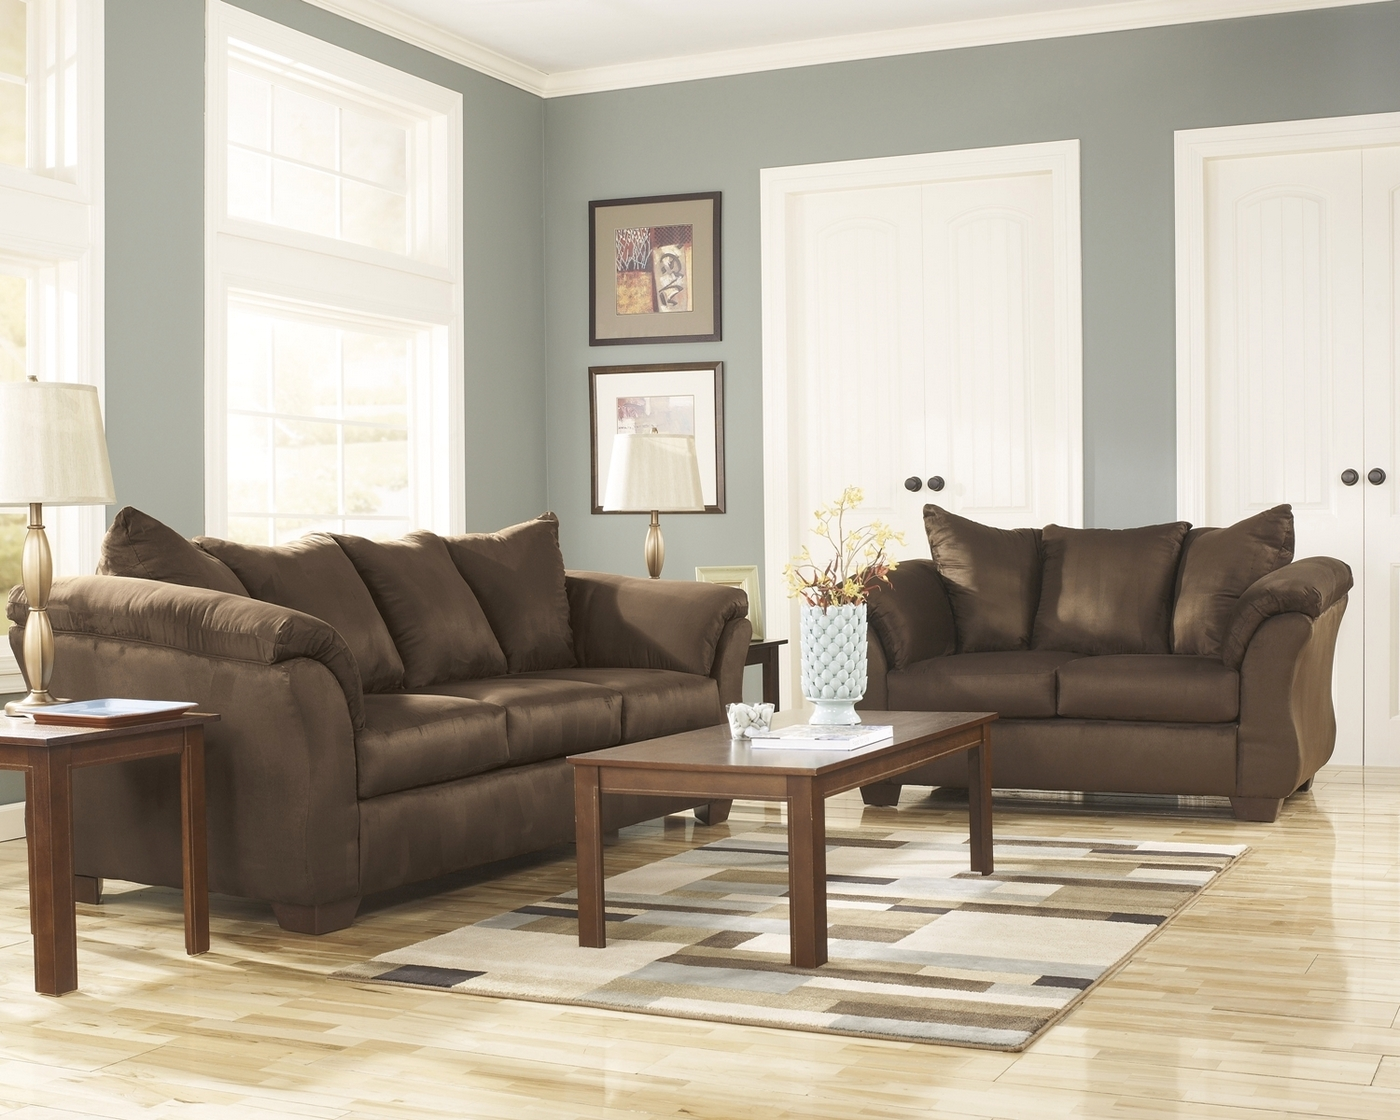 Brown Sofa And Loveseat Sets Details About Luna Sofa Loveseat Reclining Chair Casual Microfiber 3 Piece Living Room Set